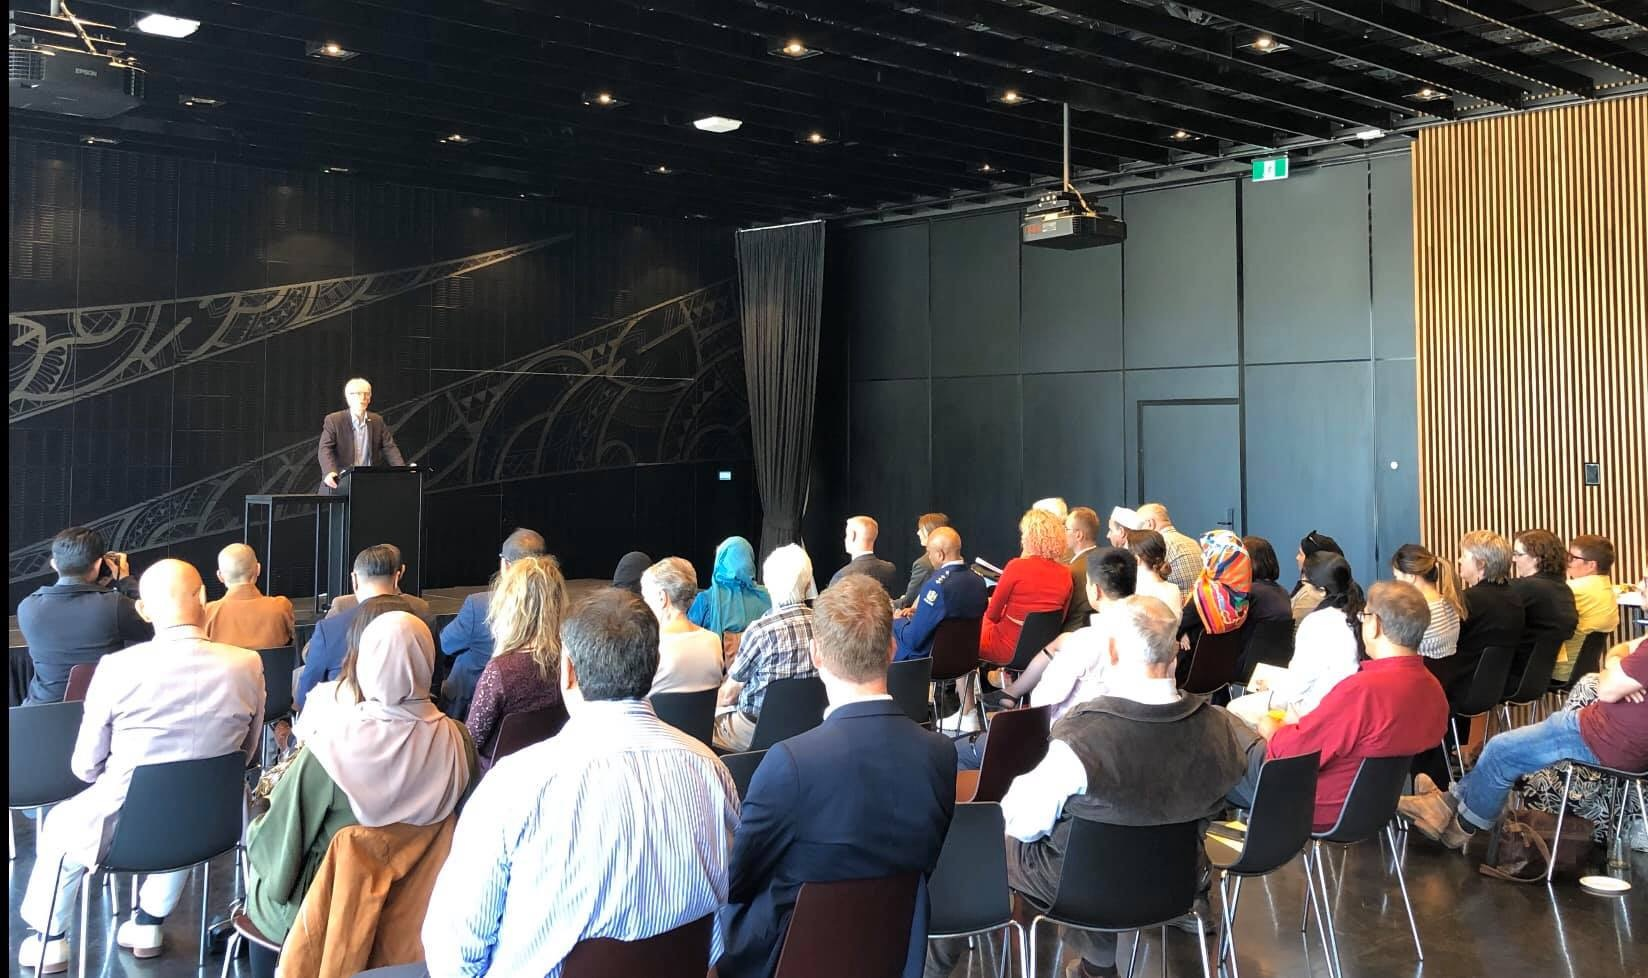 National Statement on Religious Diversity 3rd edition is launched